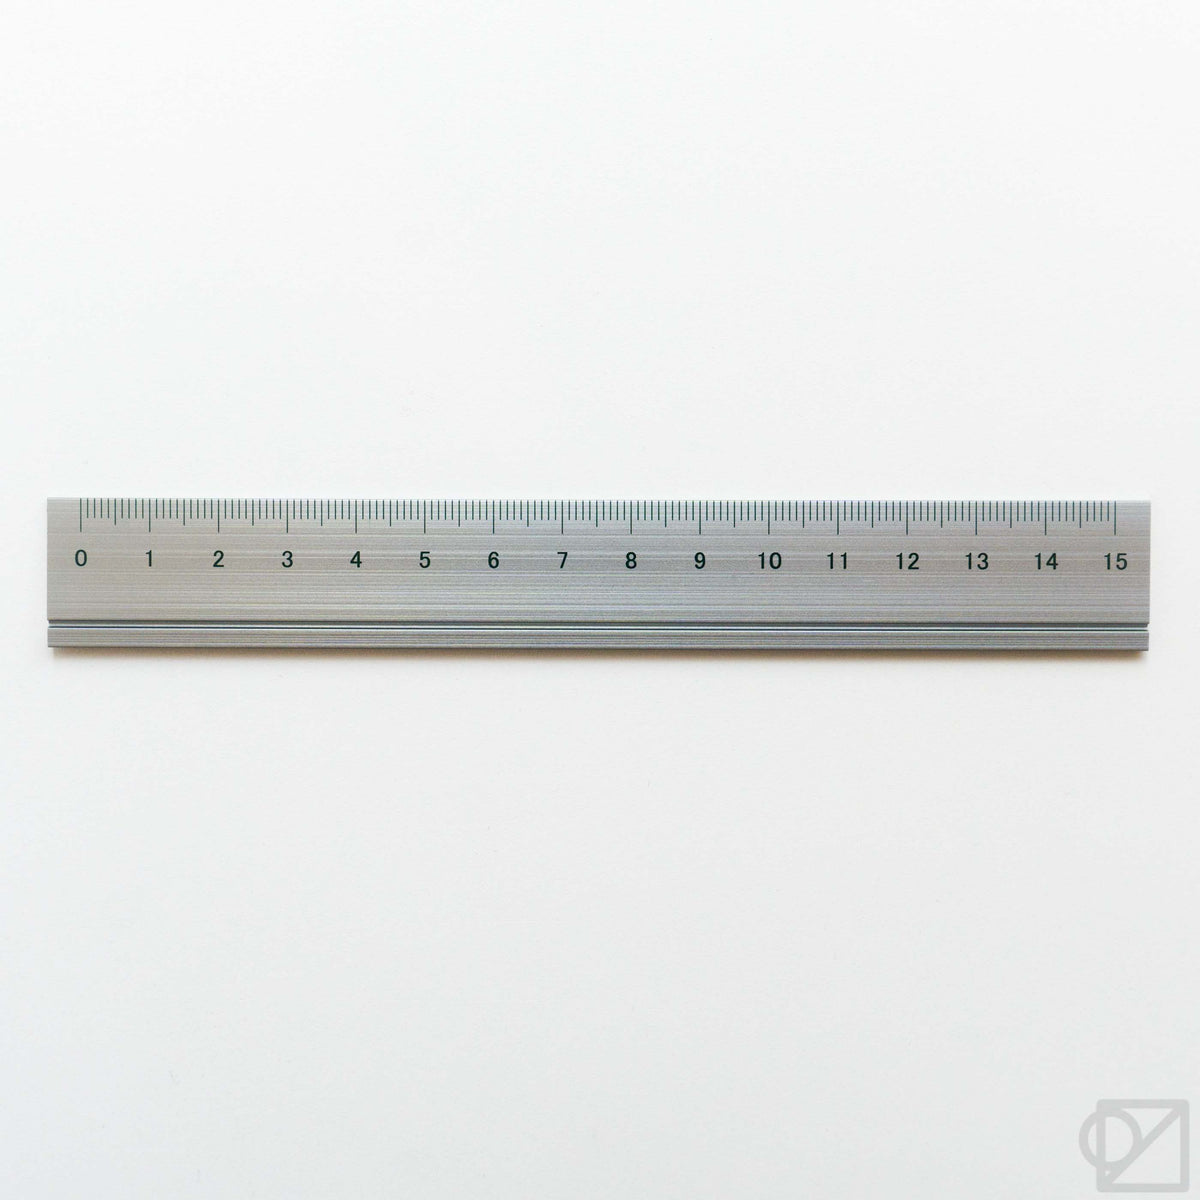 SLIP-ON Aluminum 15cm Ruler Gunmetal